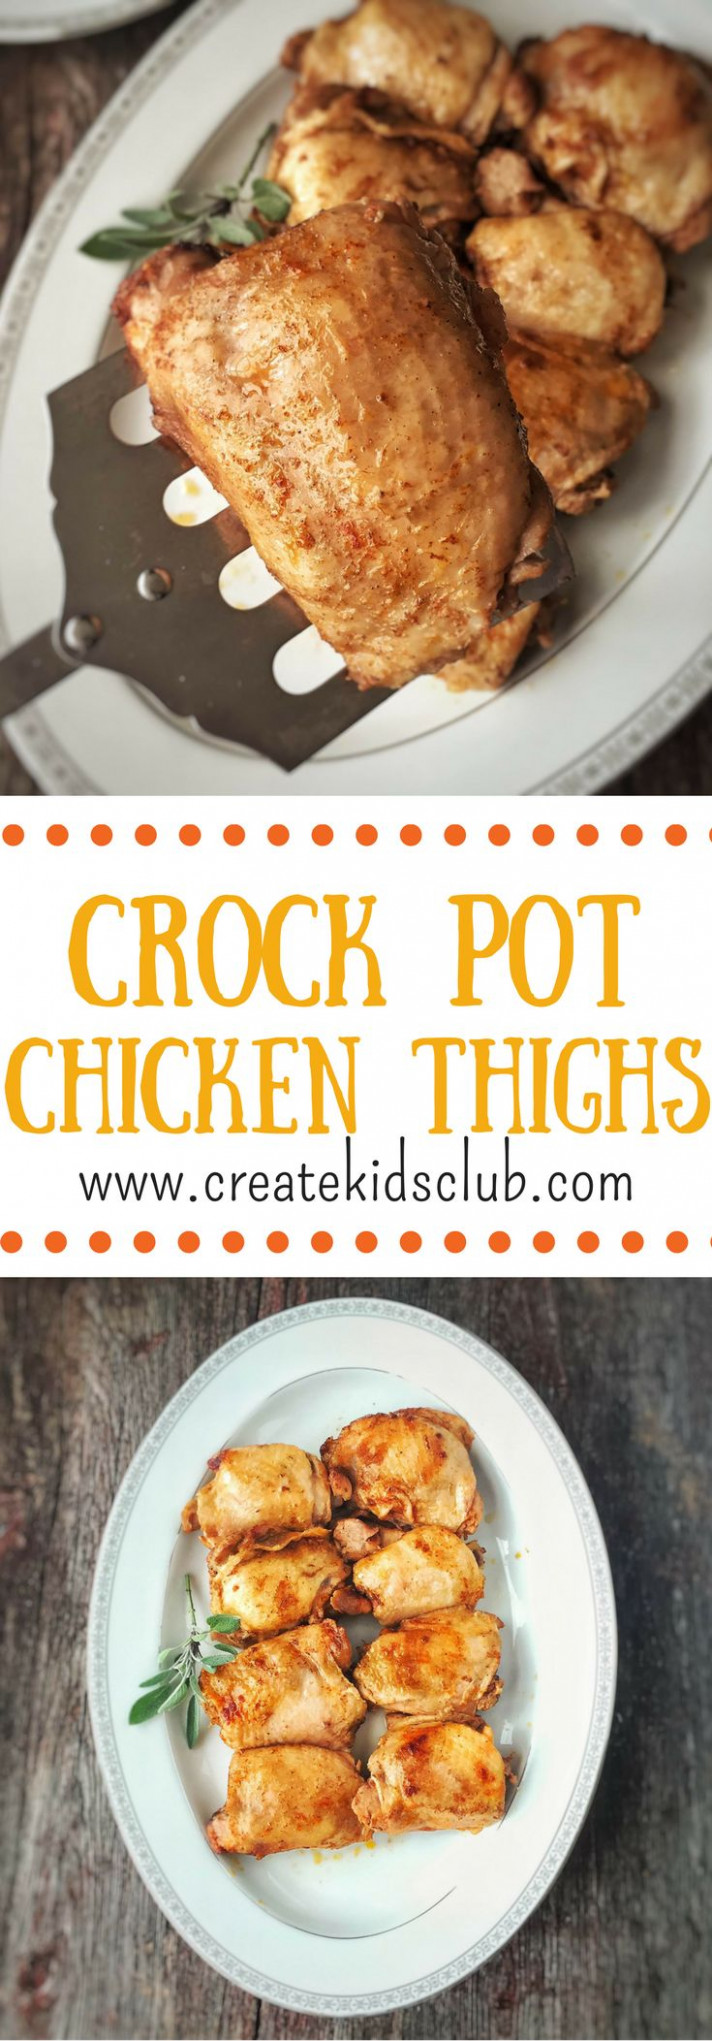 Best 25+ Crockpot chicken thighs ideas on Pinterest | Slow ...